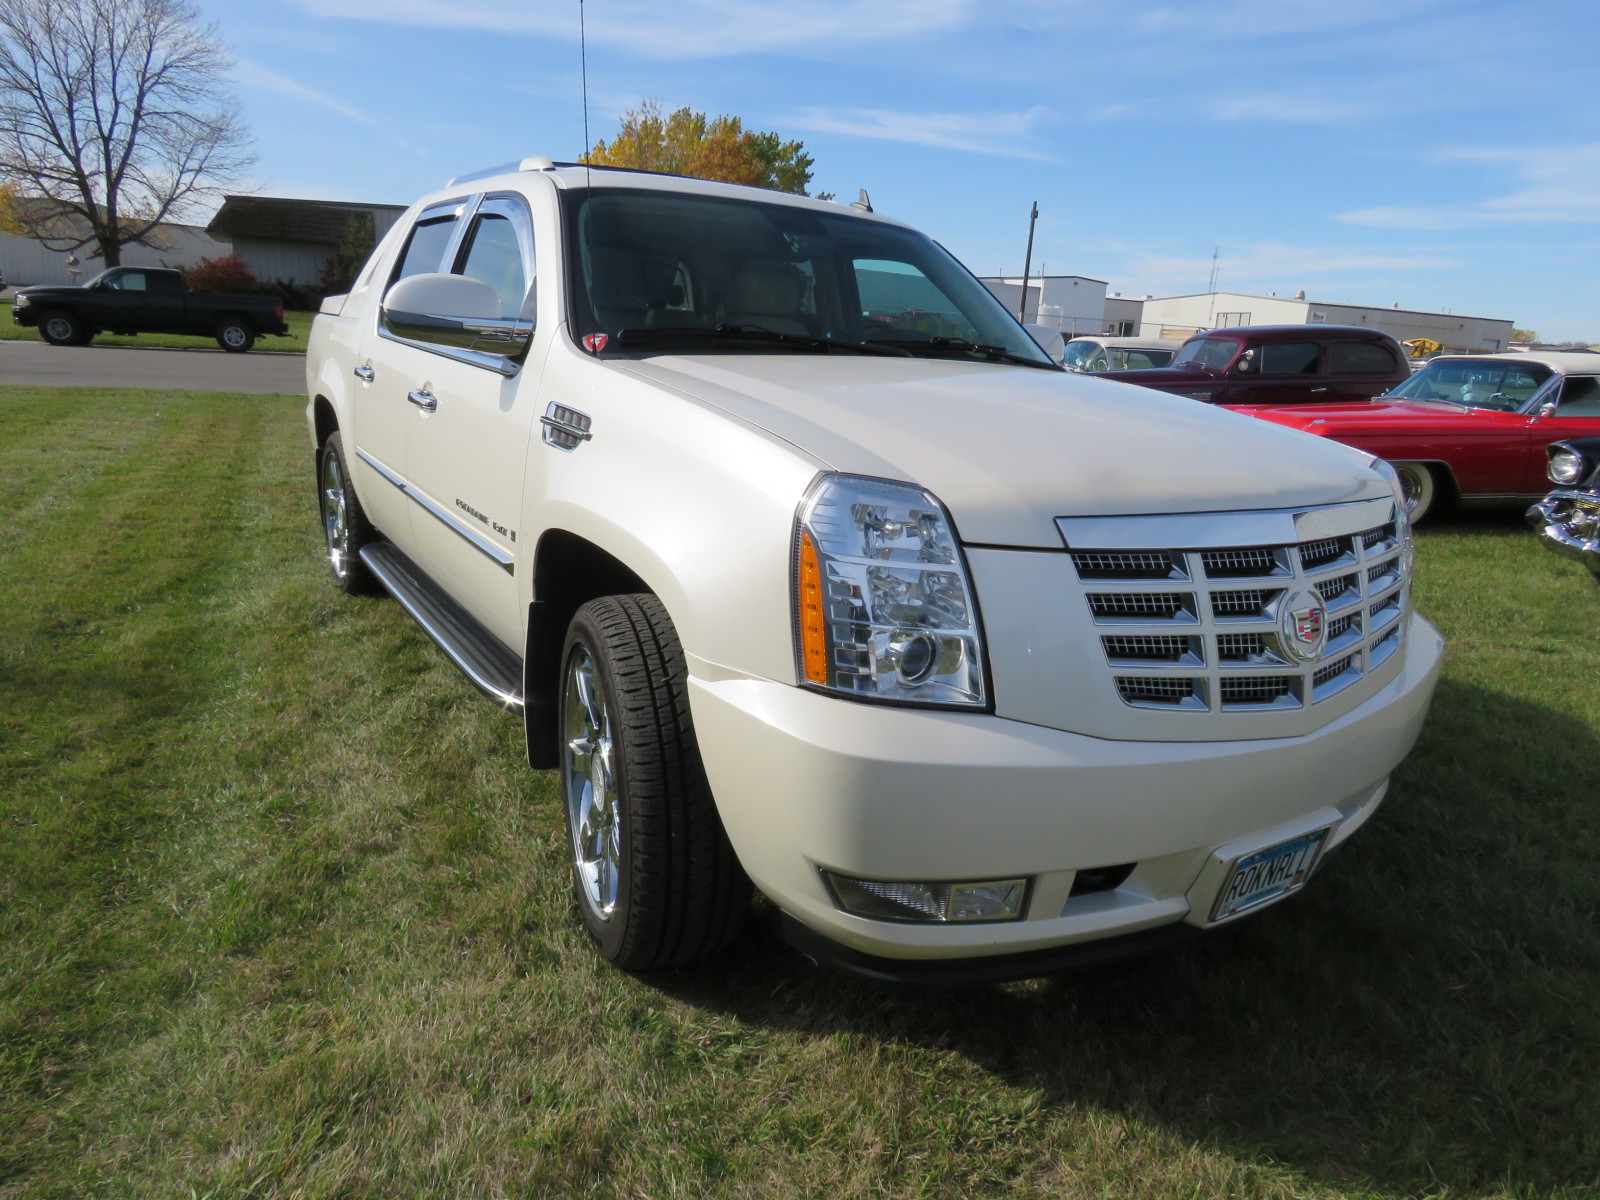 for about us ecdddbbbx escalade fabulous cadillac bestluxurycars sale